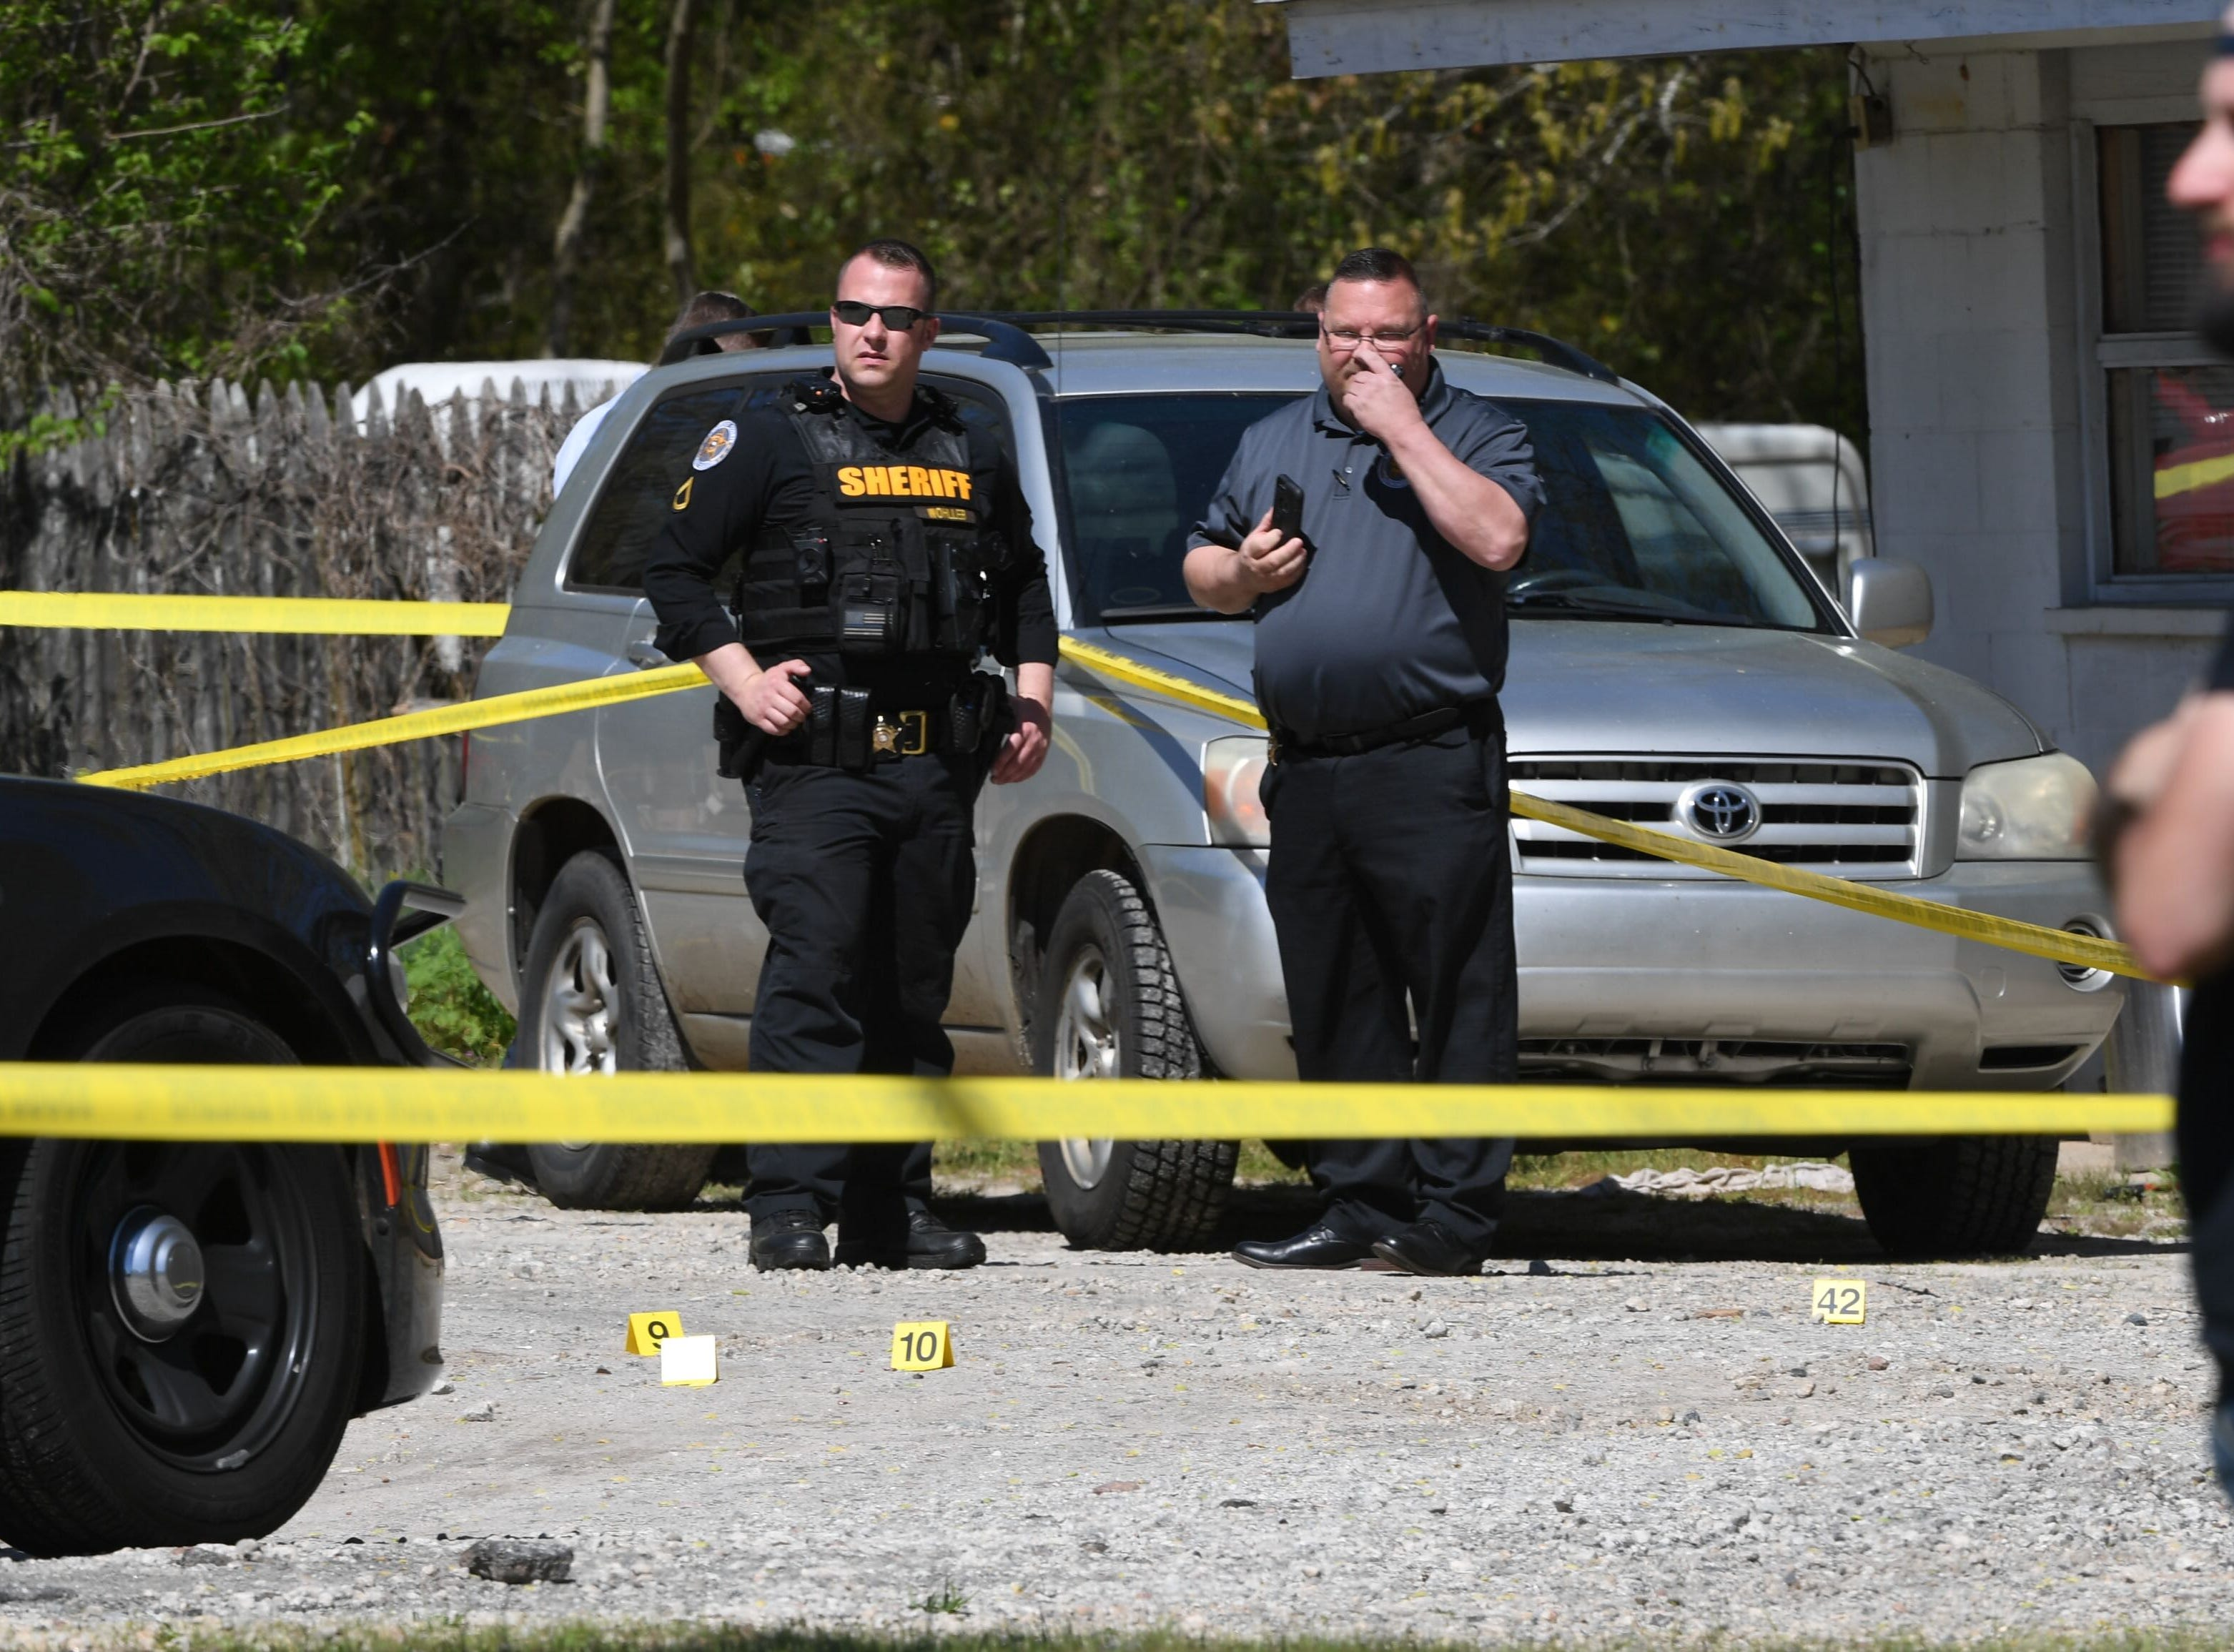 Anderson County Sheriff's Office deputies respond to a shooting at Hilltop Motel on Hwy 29 where two were reported shot.